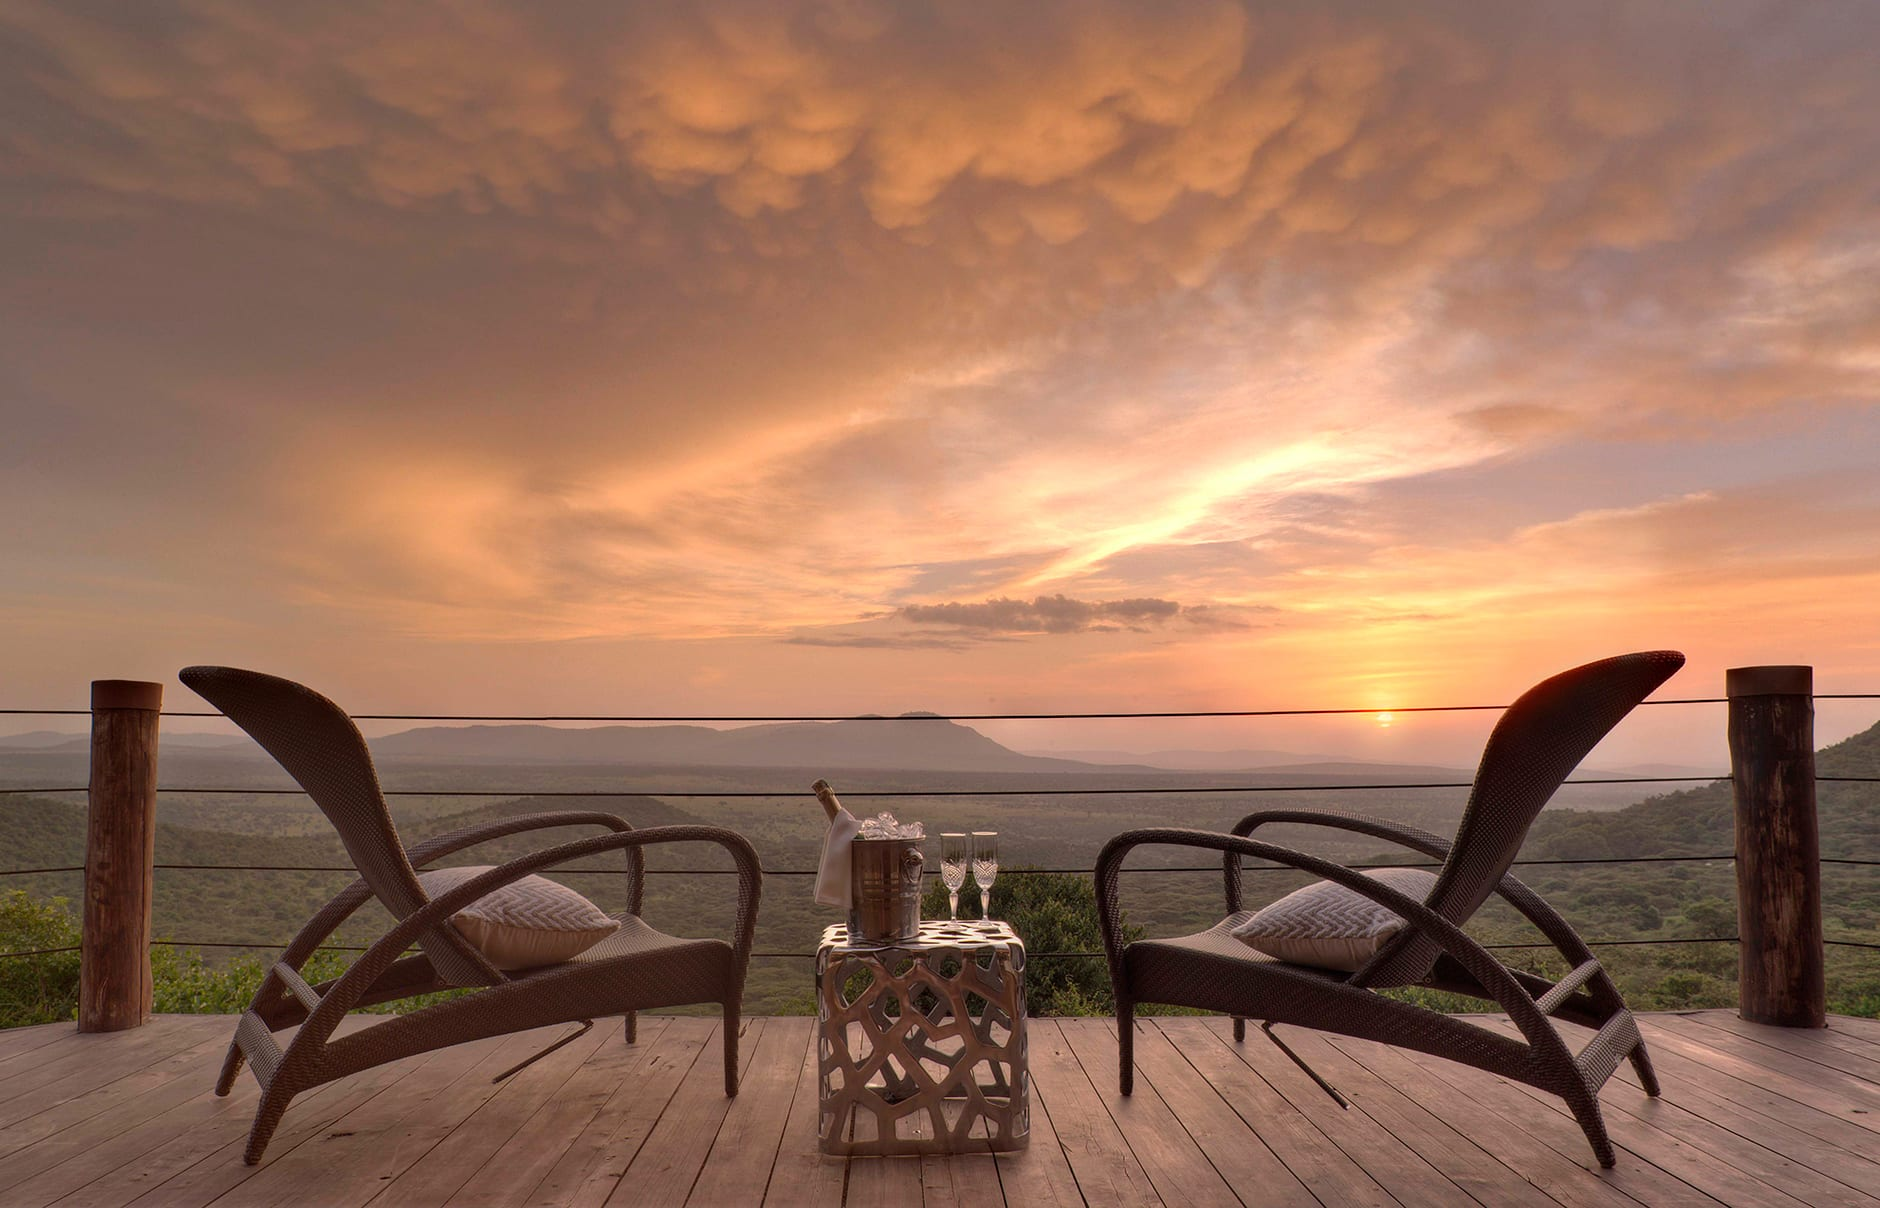 Cottars 1920s Camp Masai Mara, Kenya. Hotel Review by TravelPlusStyle. Photo © Cottar's Safaris